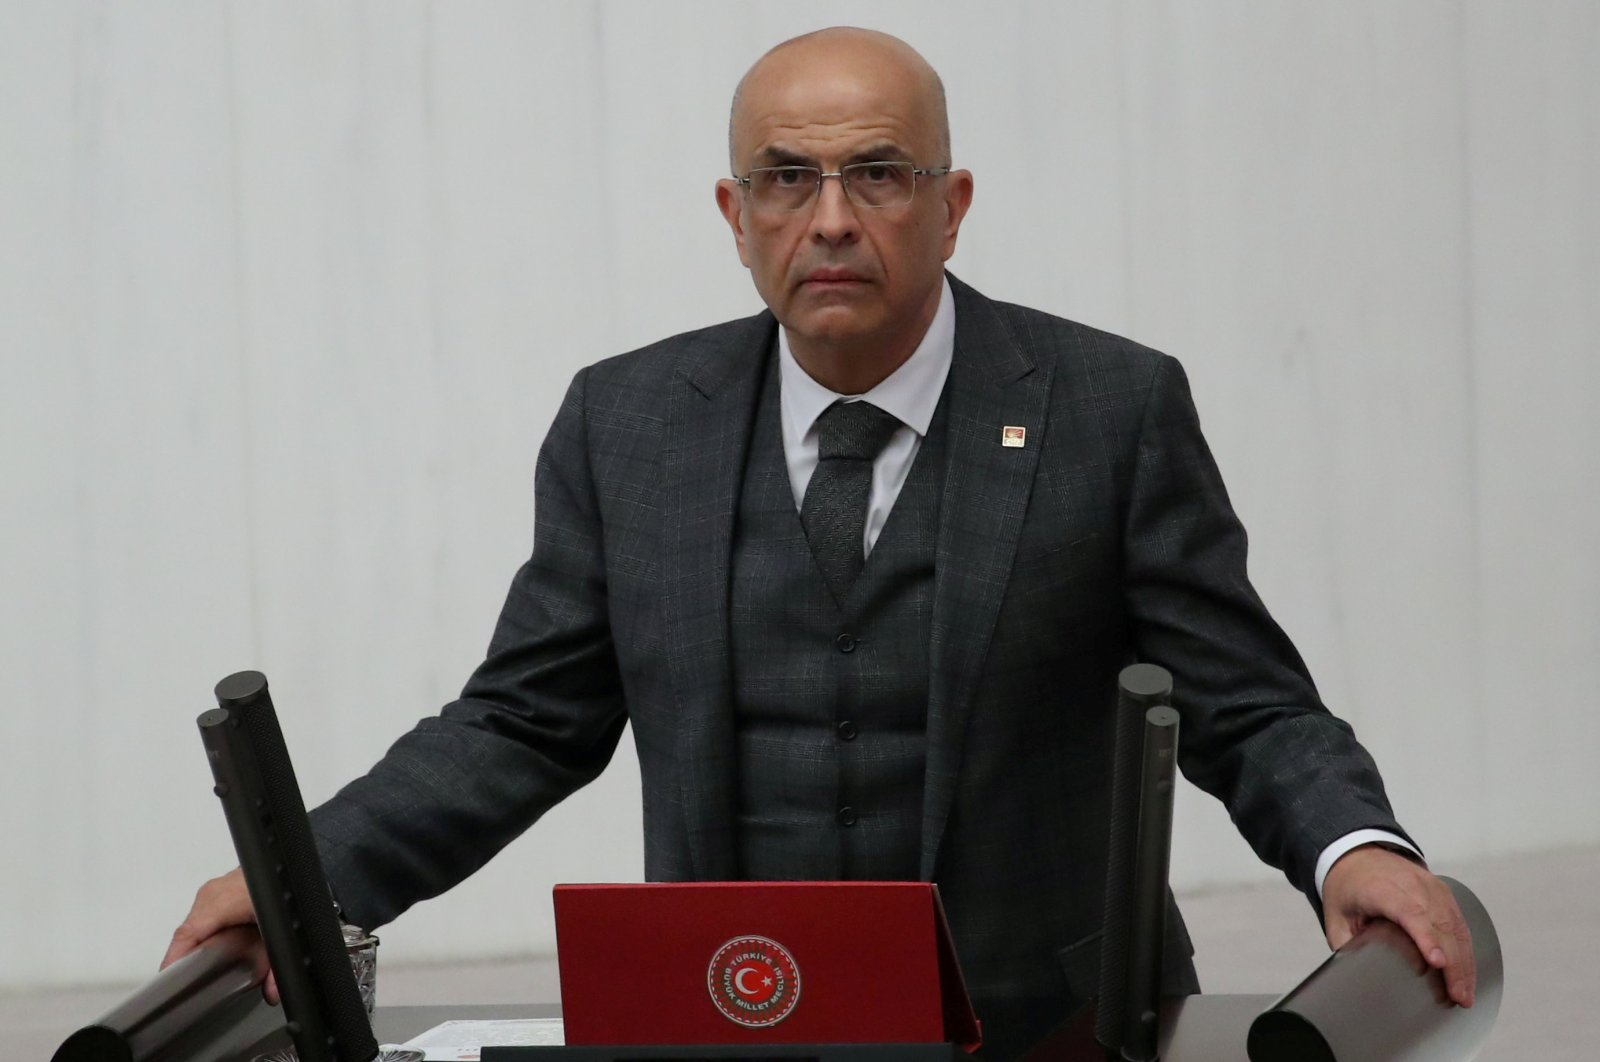 Enis Berberoğlu, a deputy from the main opposition Republican People's Party (CHP), takes his oath at the Turkish Parliament in the capital Ankara, Oct. 1, 2018. (Reuters Photo)